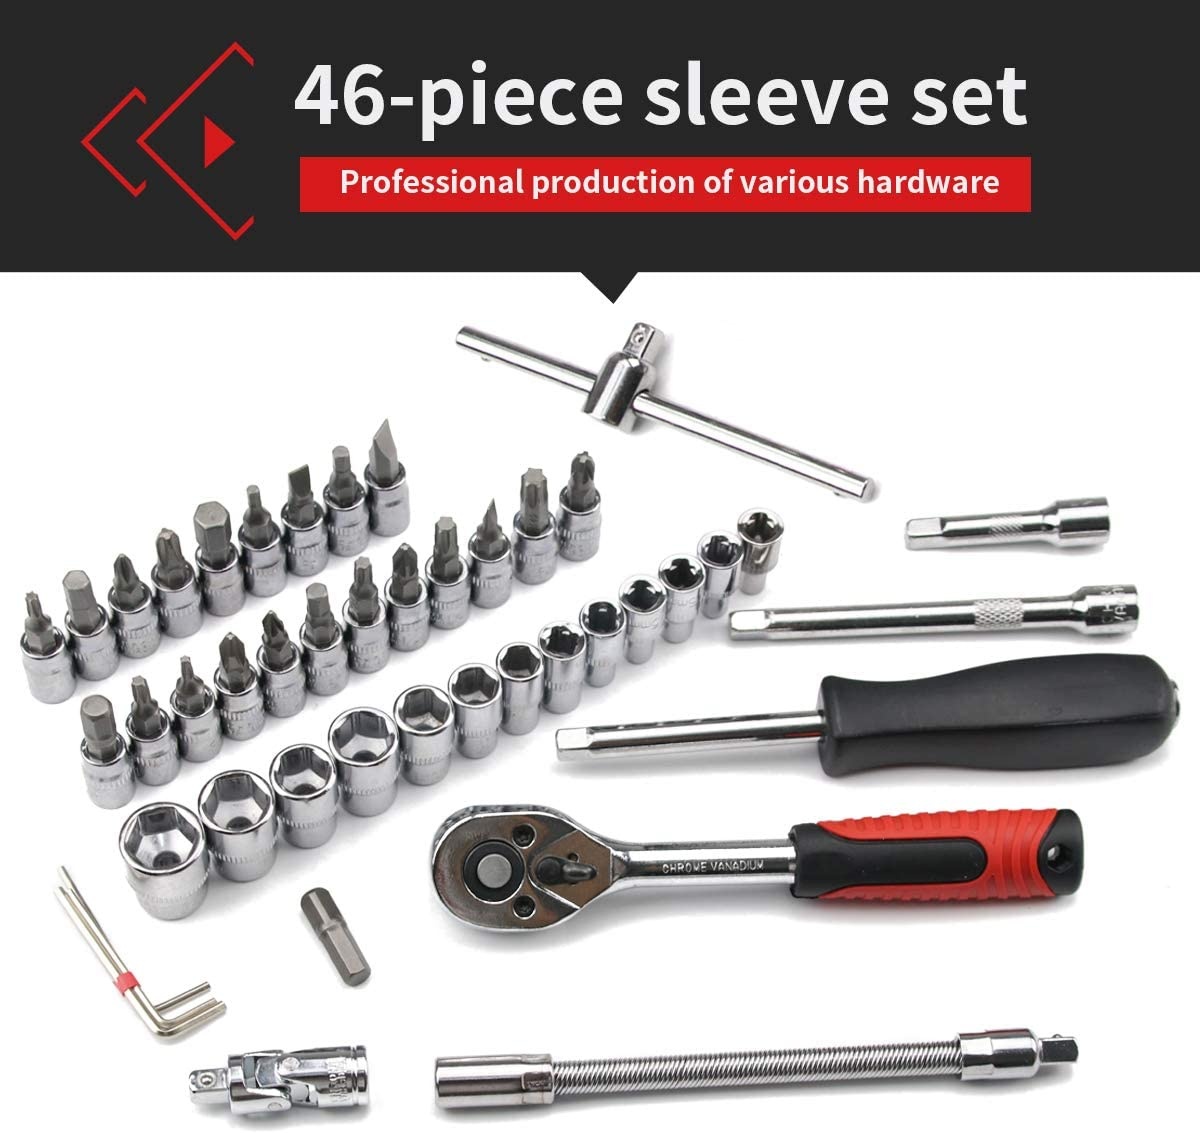 Acescen Socket Ratchet Wrench Set Combination Screwdriver Drive Socket Bit Kit Adjustable Hardware Tools for Automotive Mechanical Household Bicycle Repairing 46pcs 1//4-Inch A08